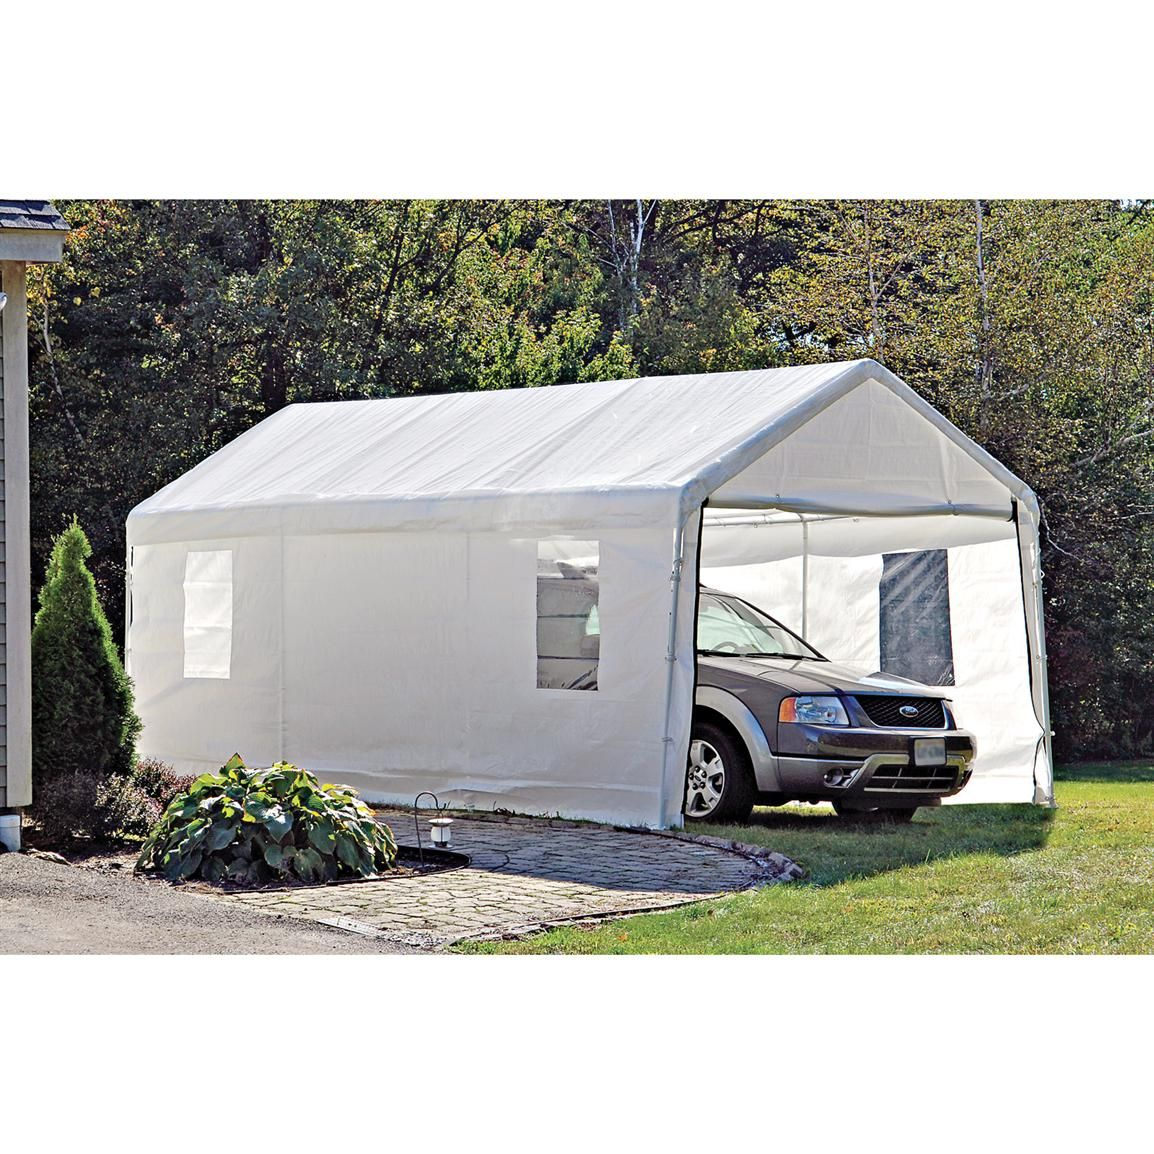 10x20 foot Instant Garage & Shelter in White Garage canopies